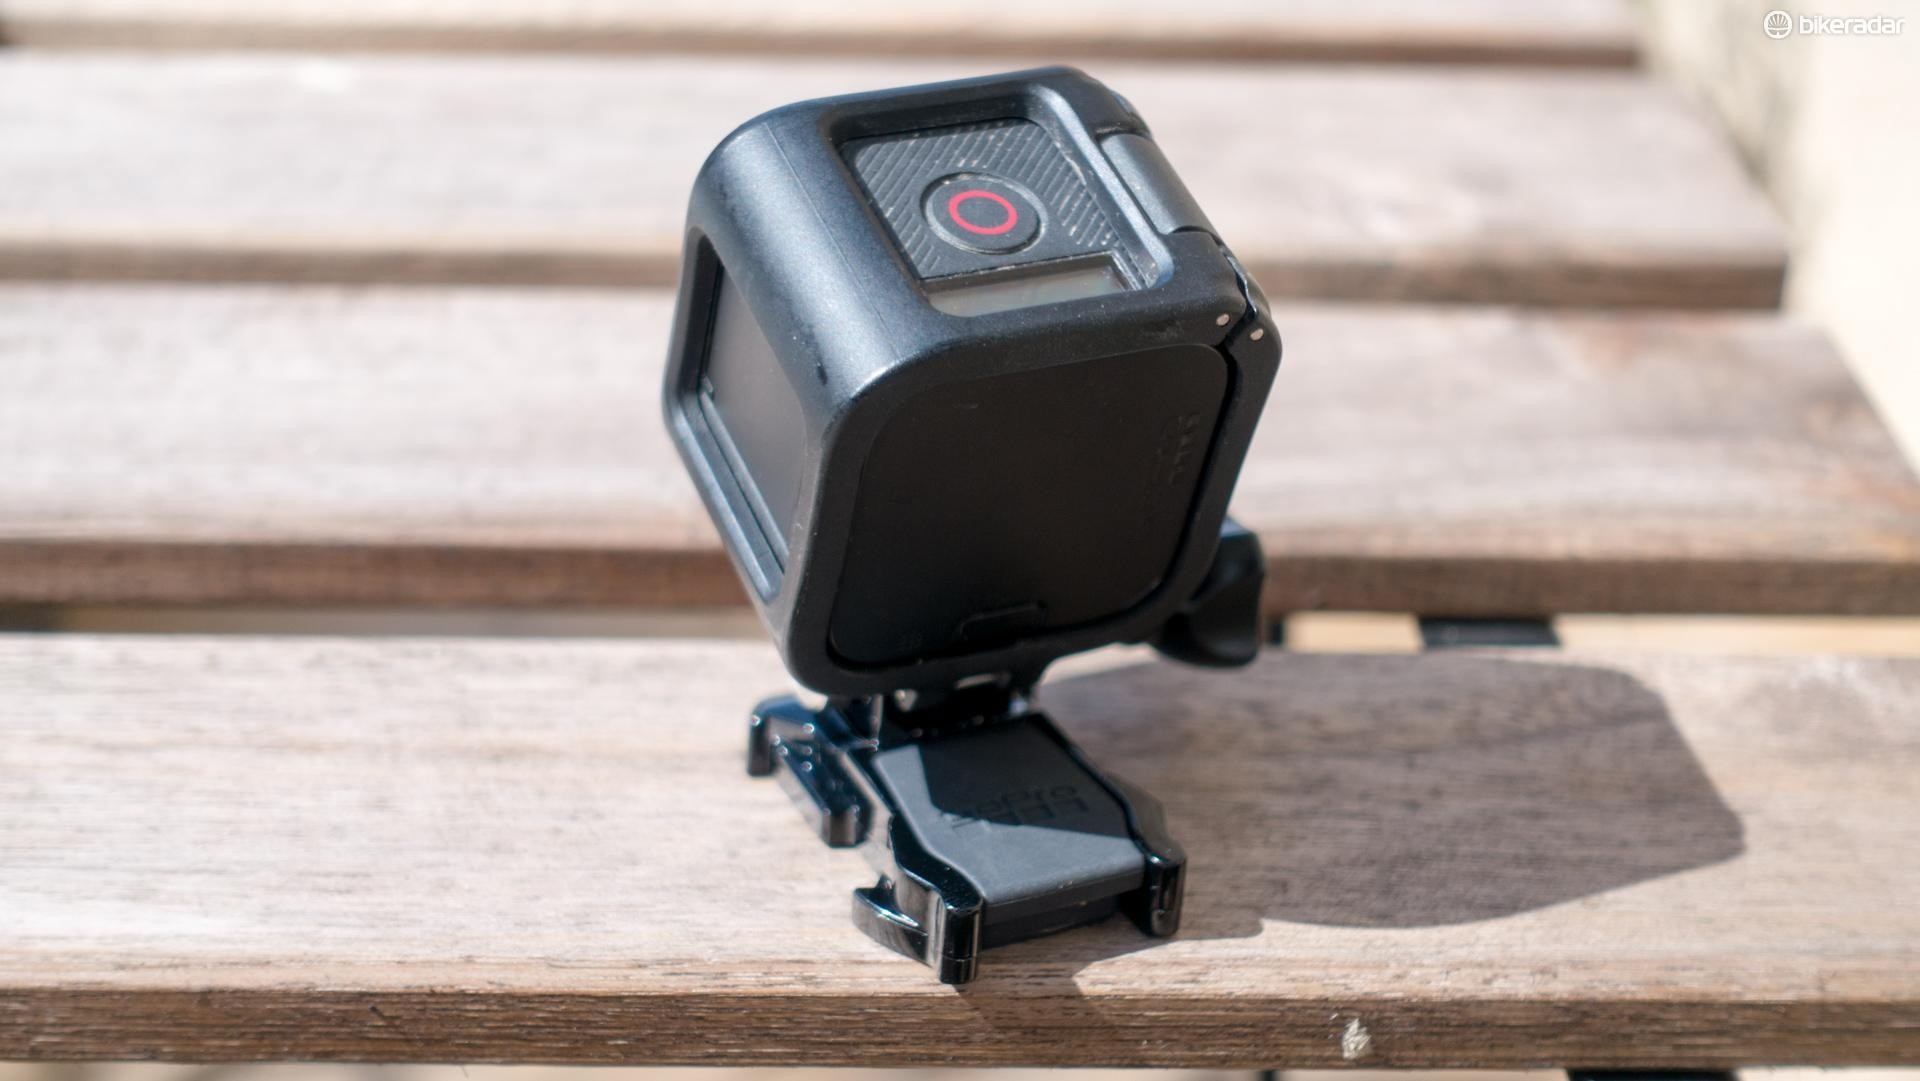 This camera is super-simple — there's a button on top for recording, plus another couple for navigating menus and that's about it